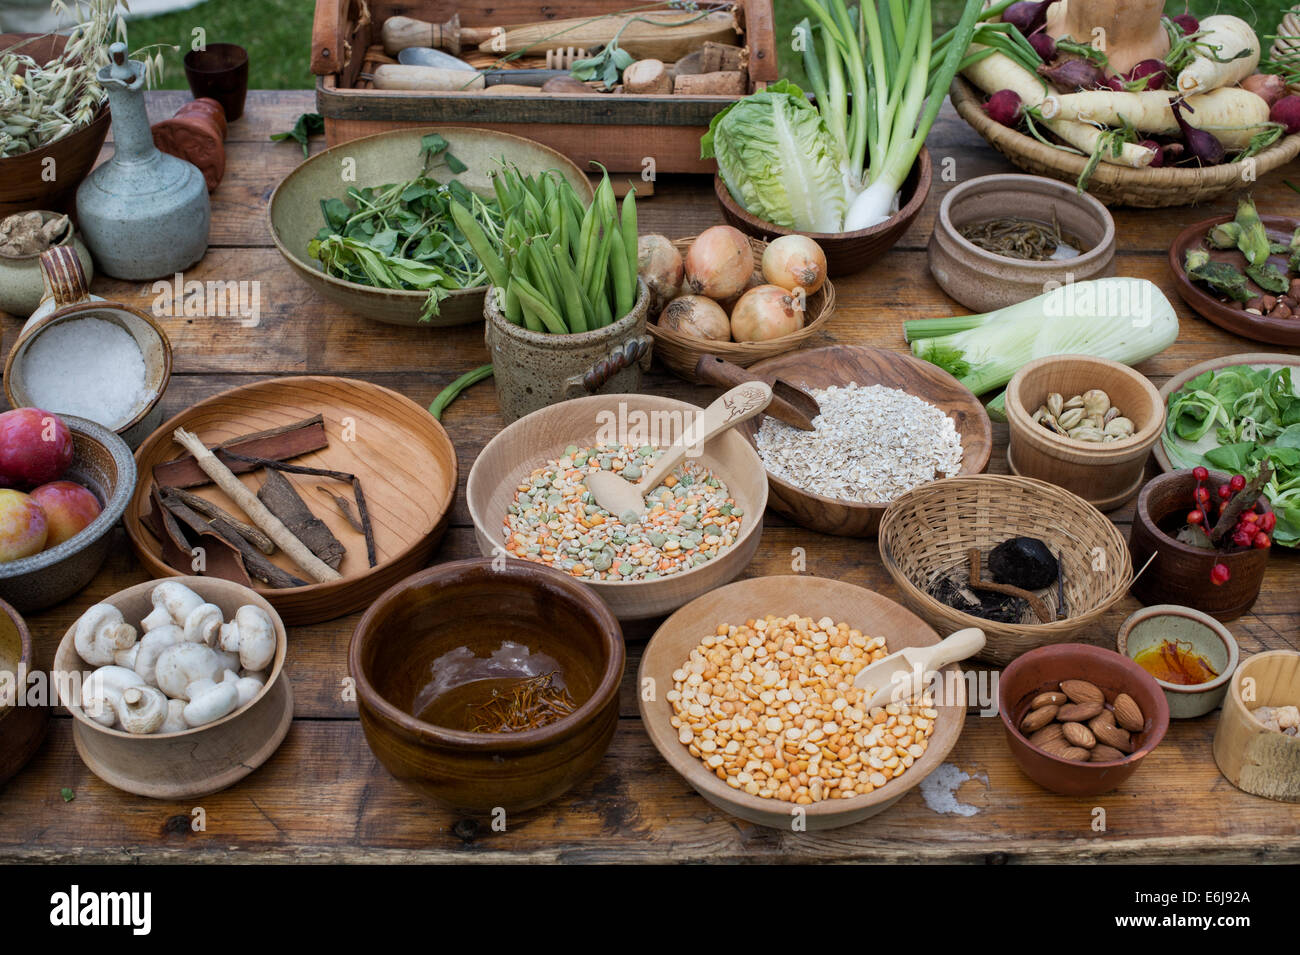 medieval food People were able to keep food edible for months and even years during the middle ages, even without refrigerators.